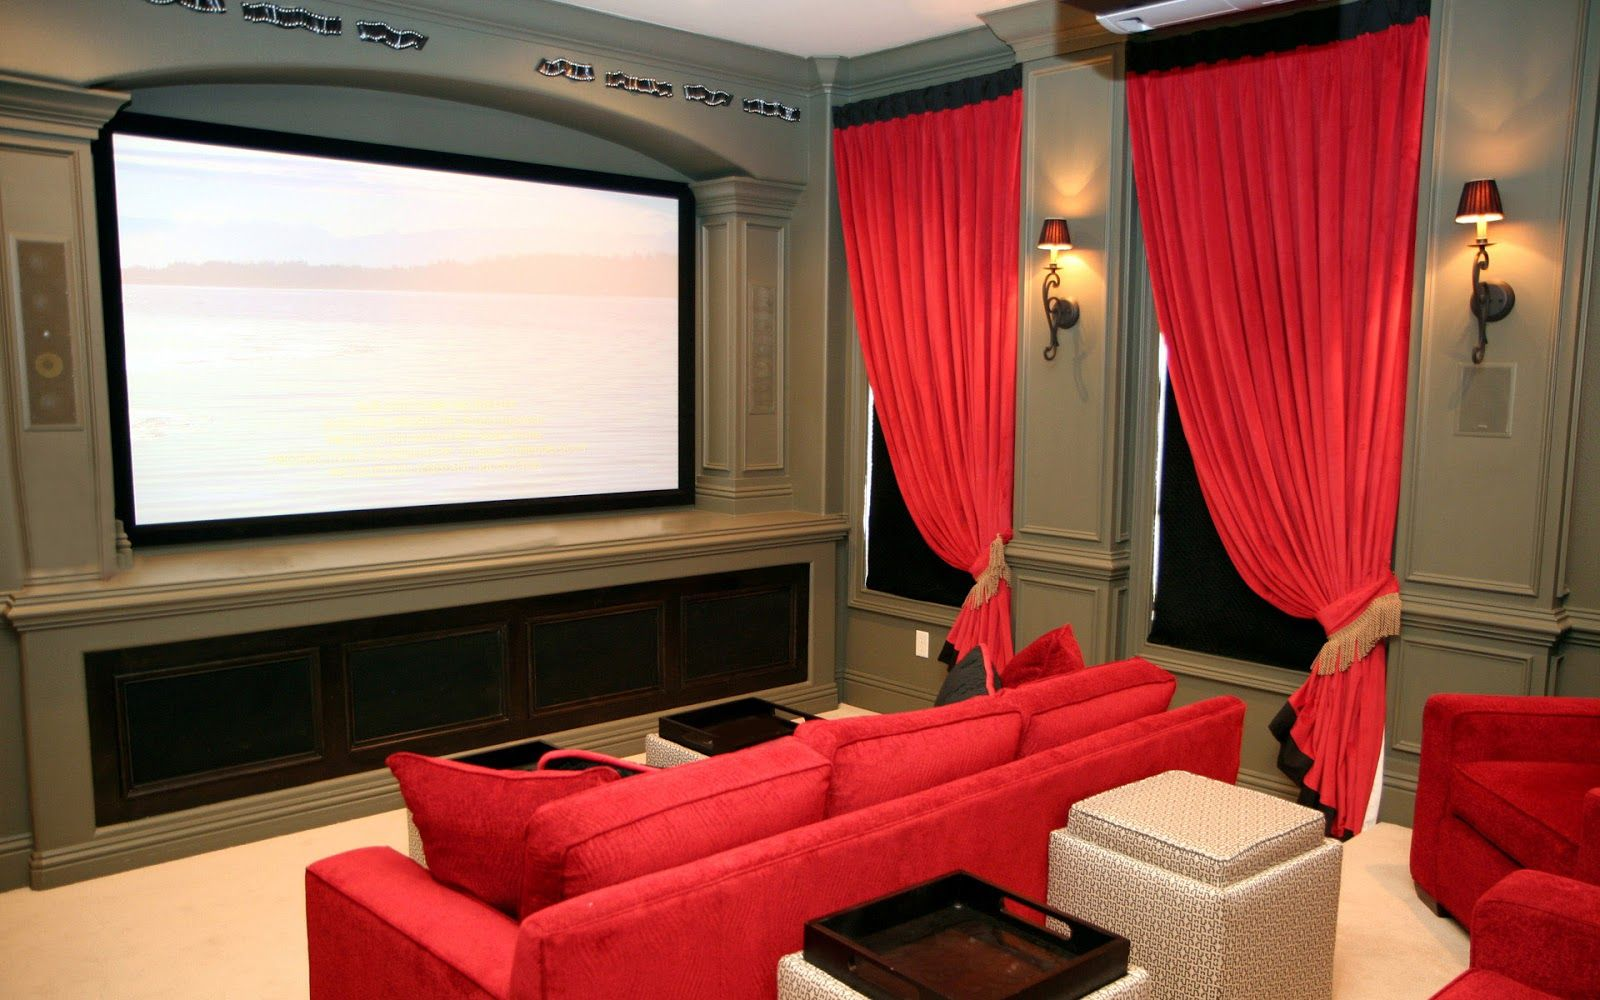 Images About Movie Theme On Pinterest Movie Rooms Movie Theme Red And Black Home Theater